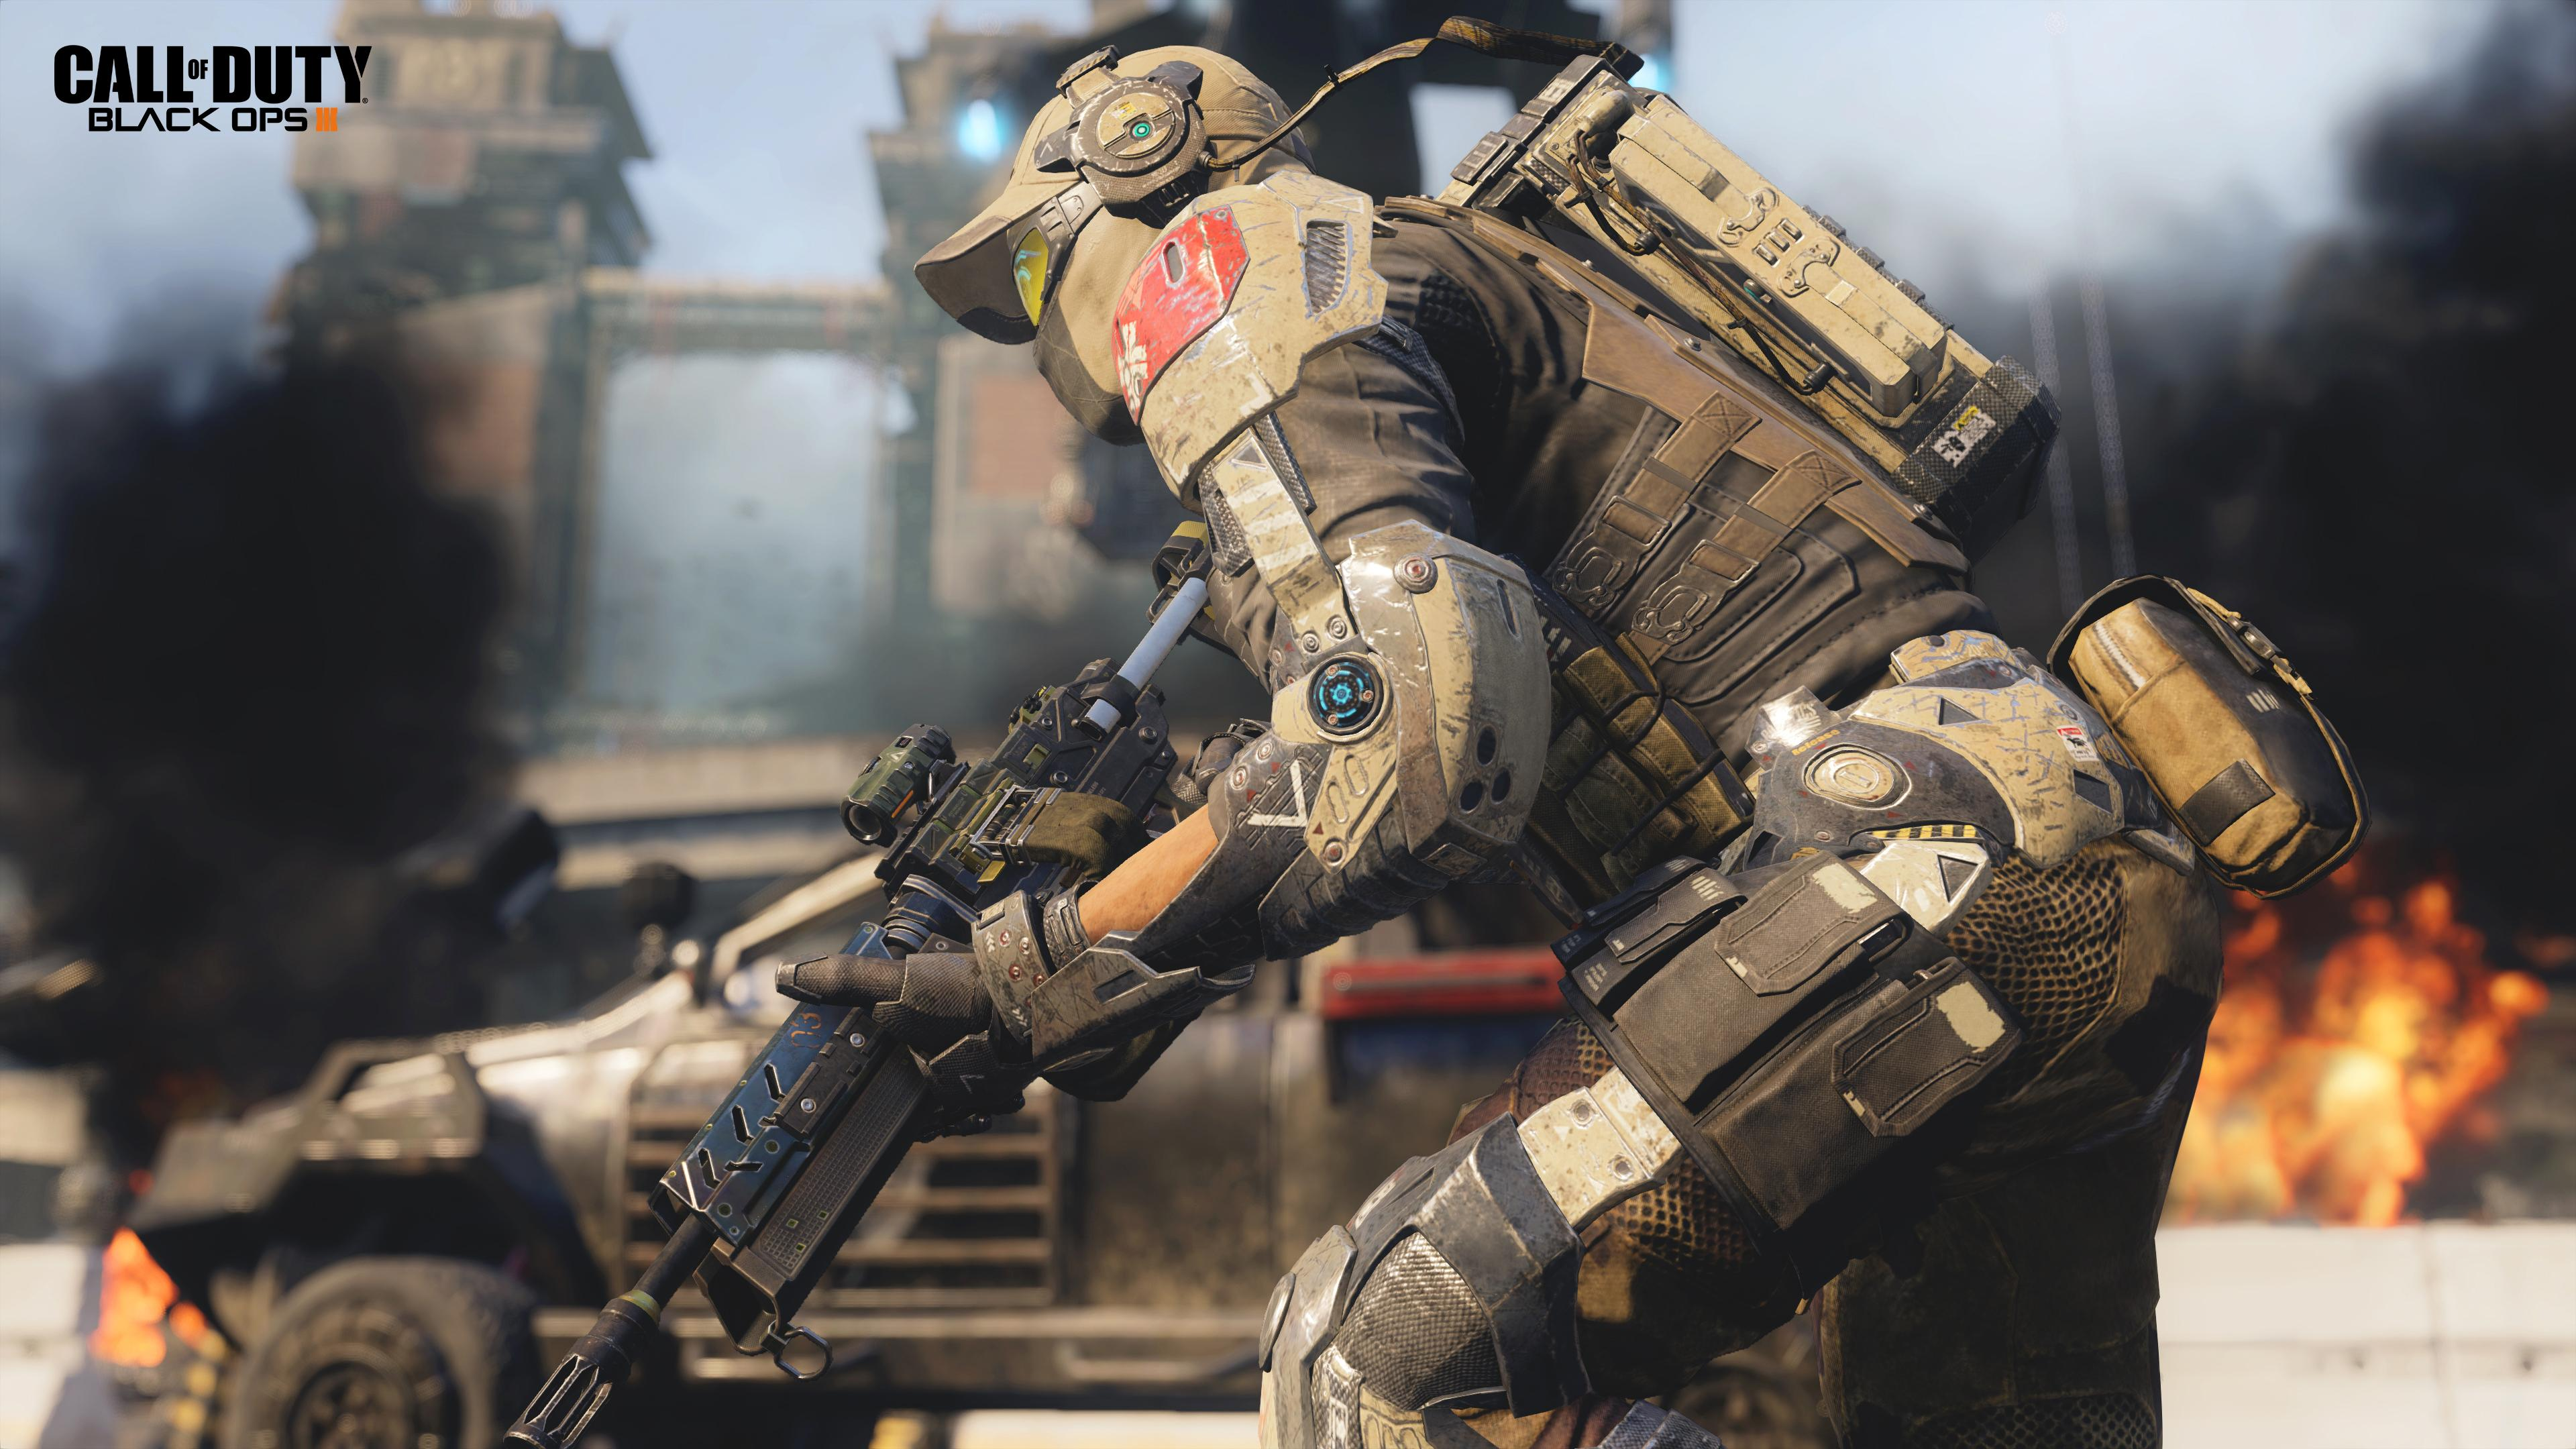 call of duty black ops 3 xbox 360 download free